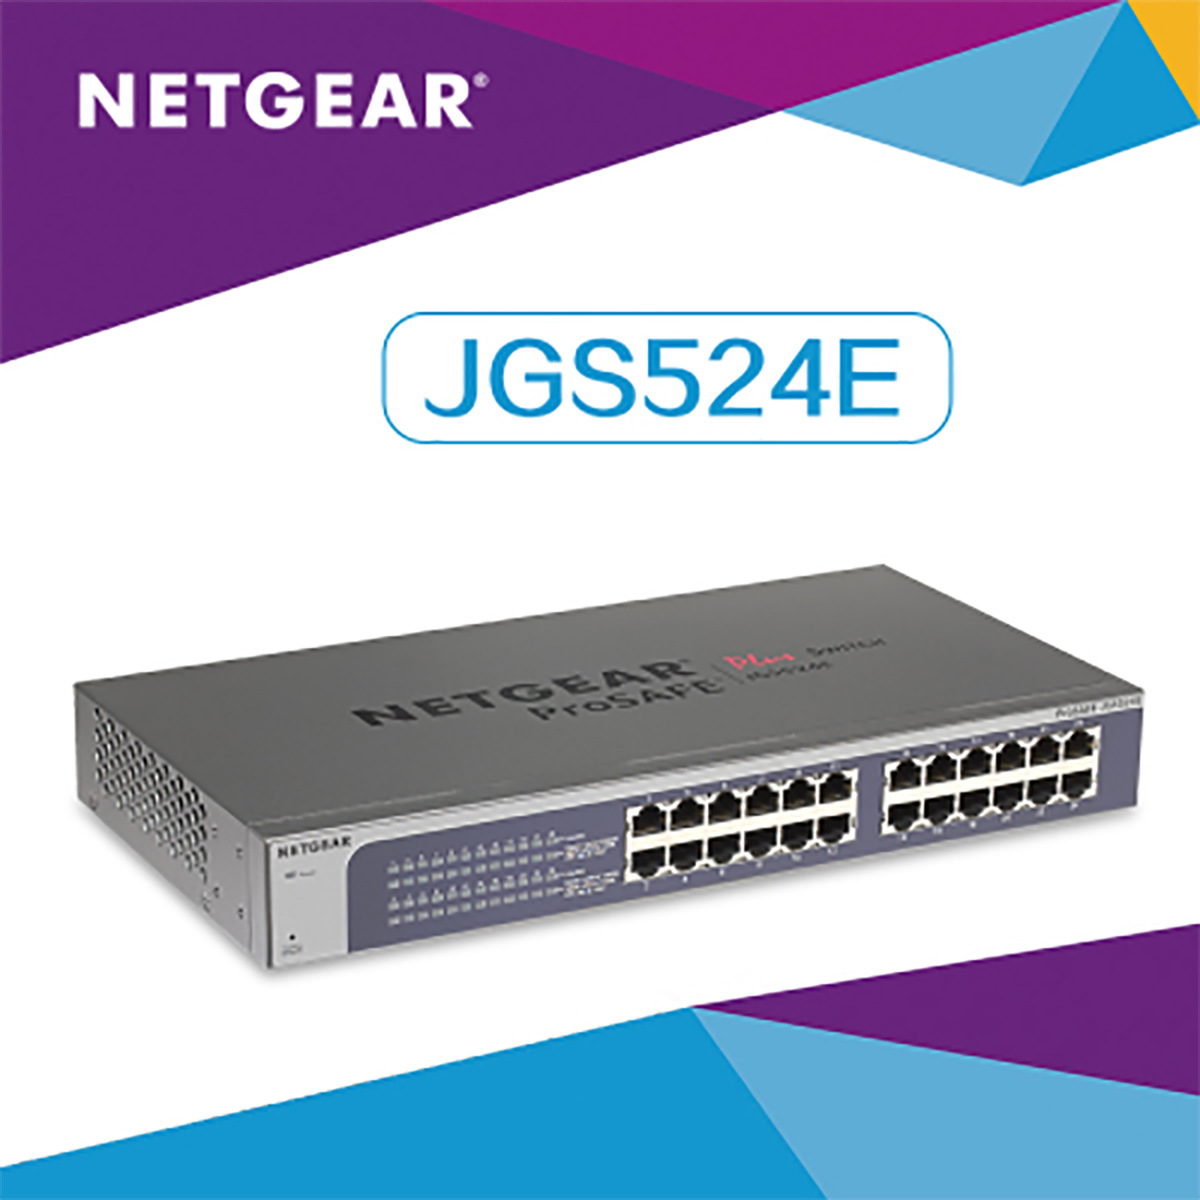 цена на POE switch Netgear netgear JGS524E 24 port full Gigabit switch iron shell network monitoring switch